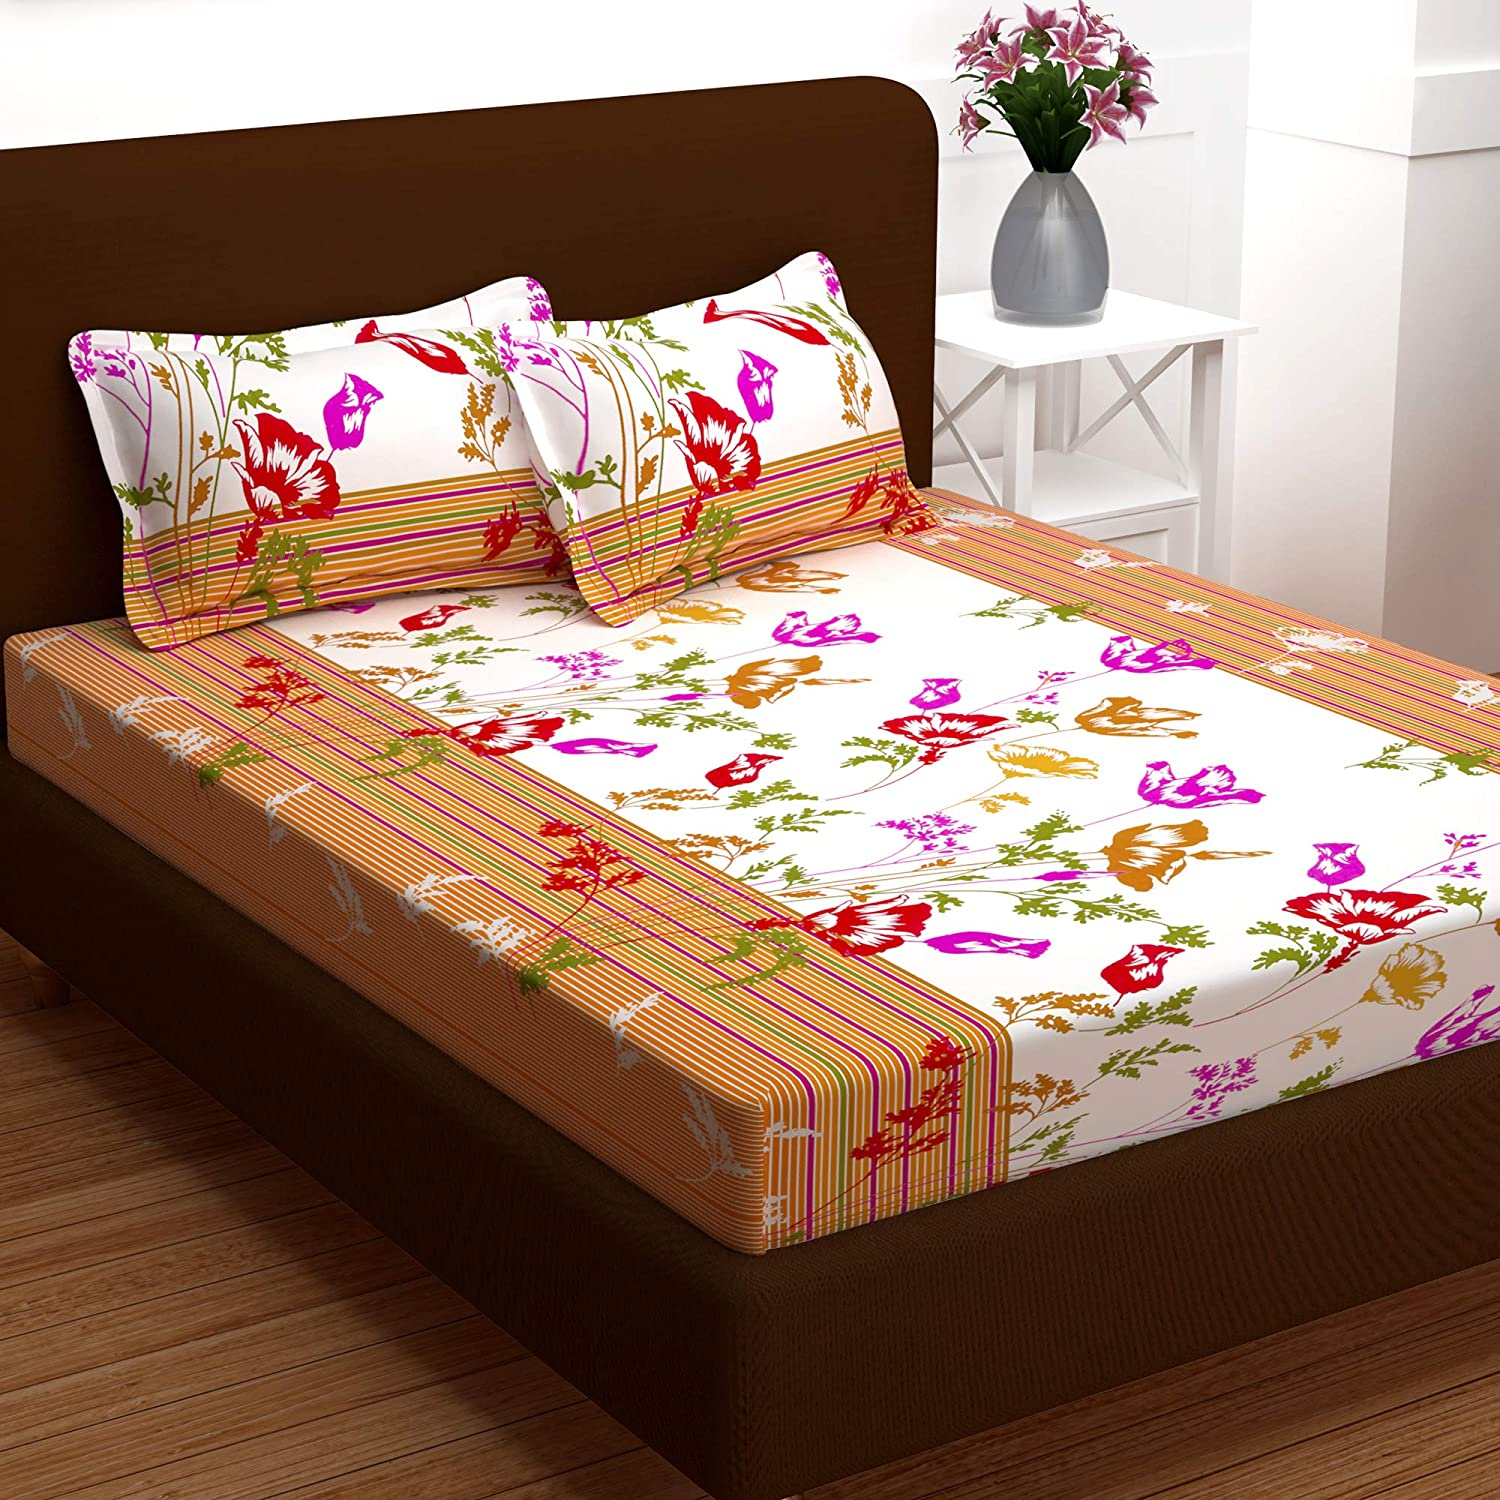 Story@Home Candy Collection 120 TC Cotton Printed 1 Double Bedsheet and 2 Pillow Covers - Floral, Brown कपास डबल बेडशीट